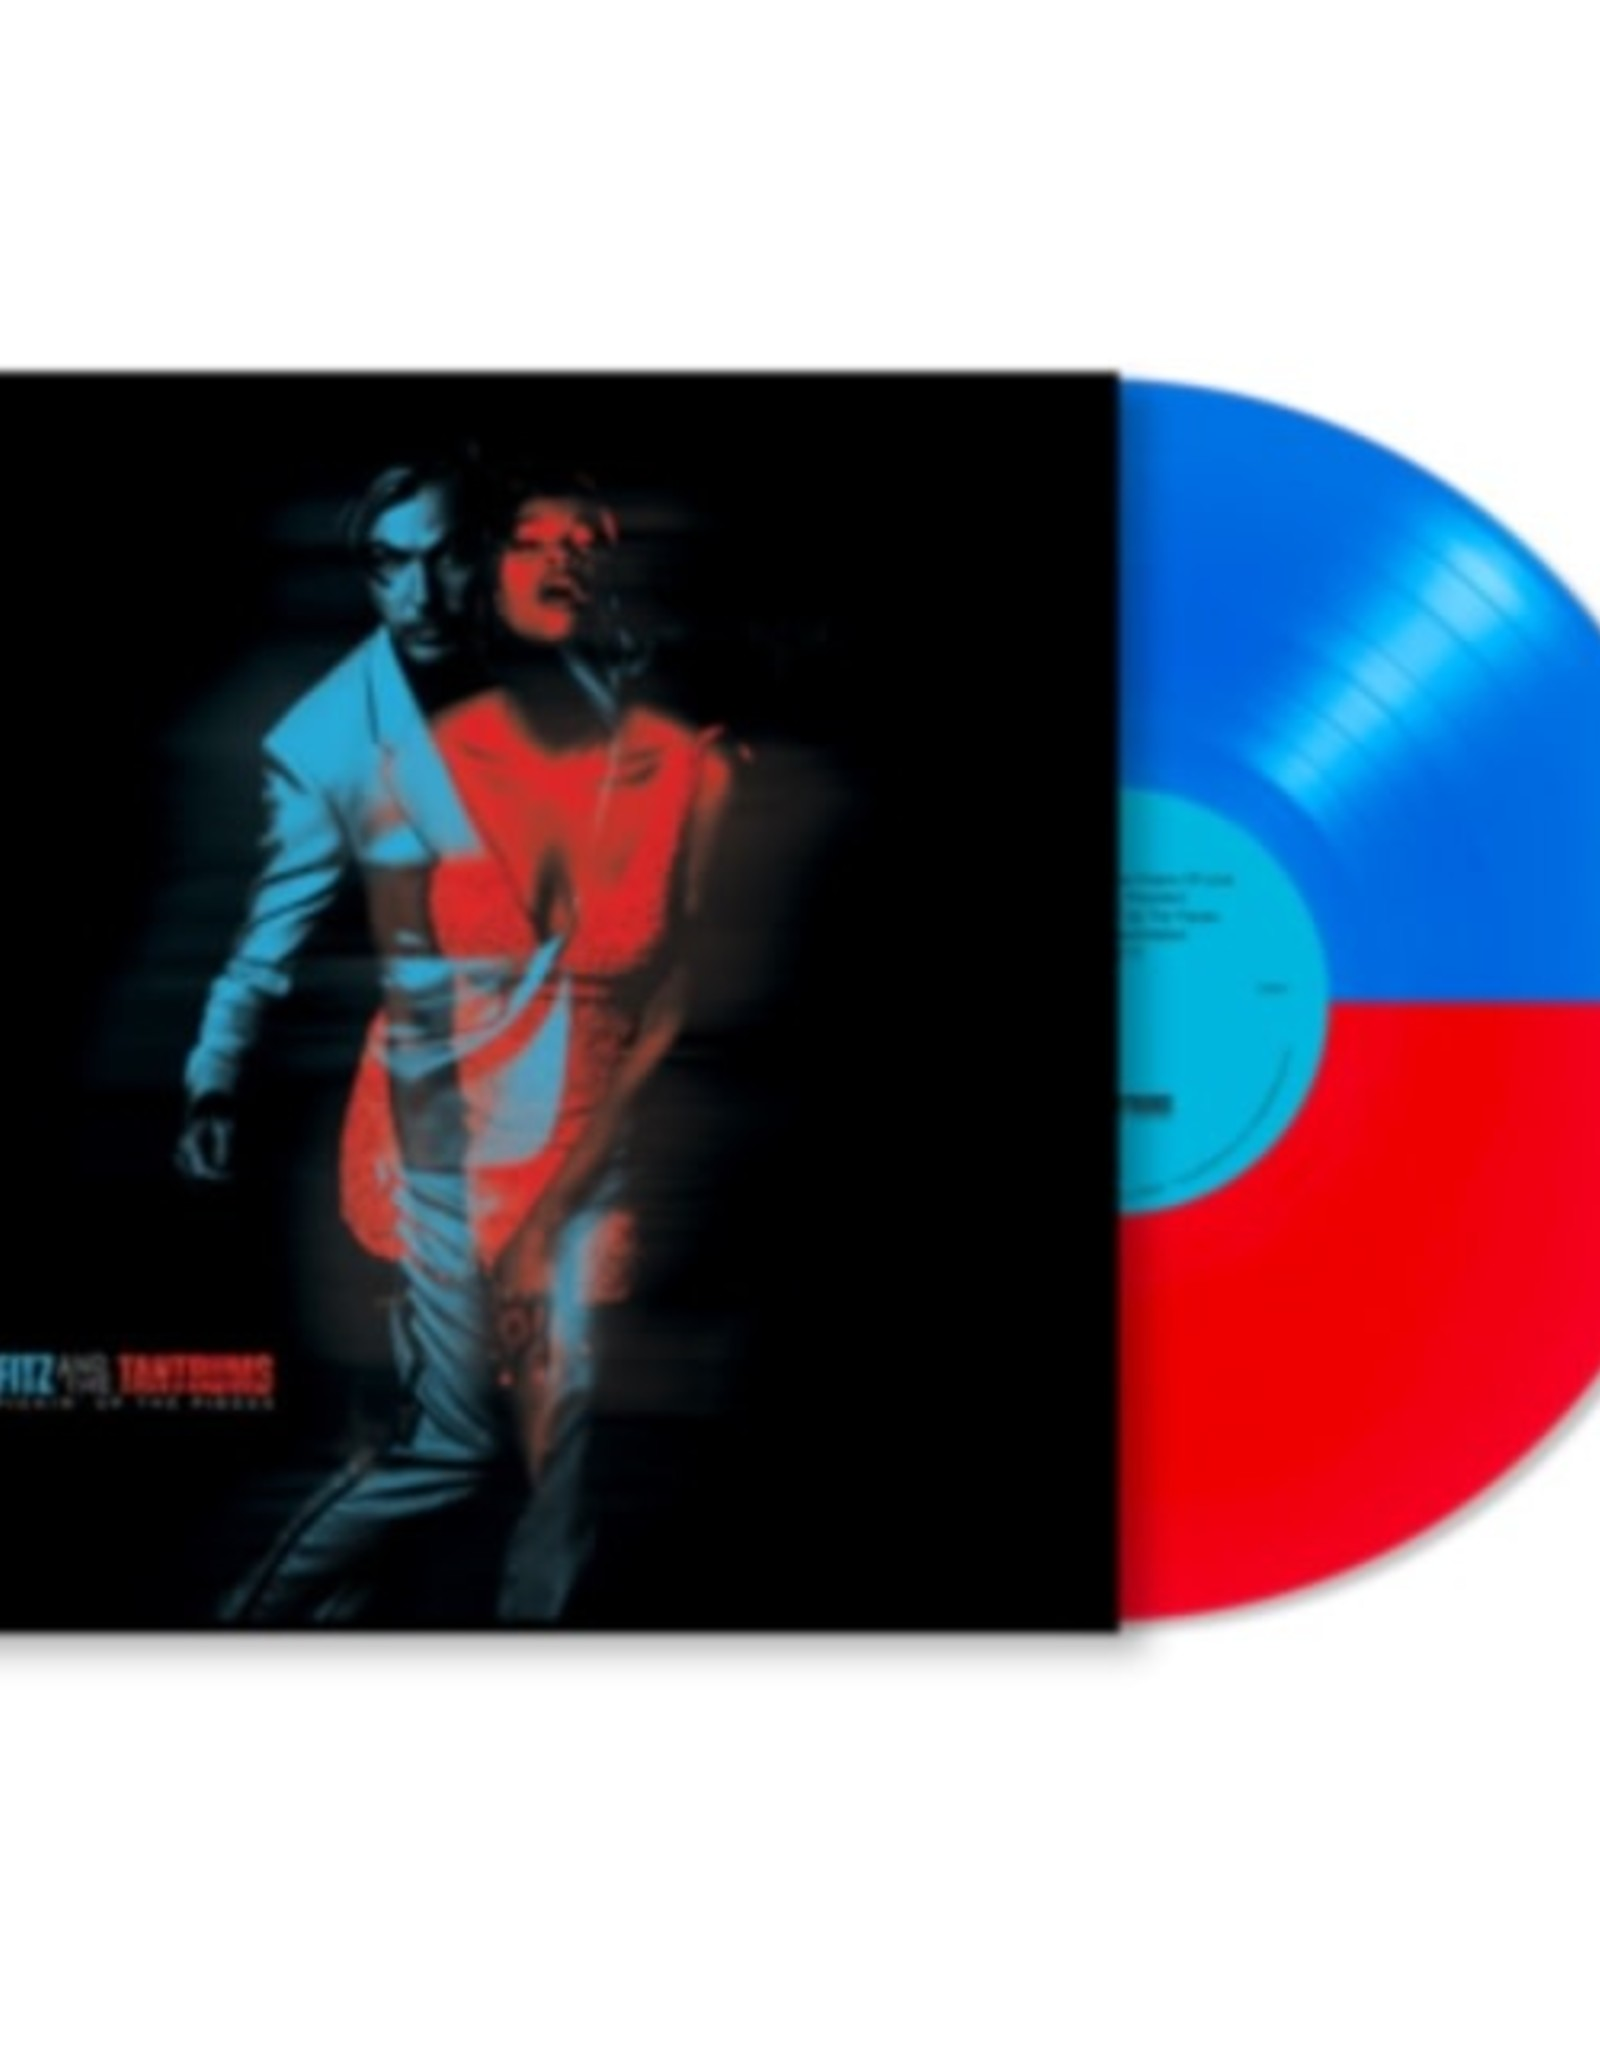 Fitz and the Tantrums - Pickin' Up The Pieces (Colored Vinyl, Red, Blue, Indie Exclusive)